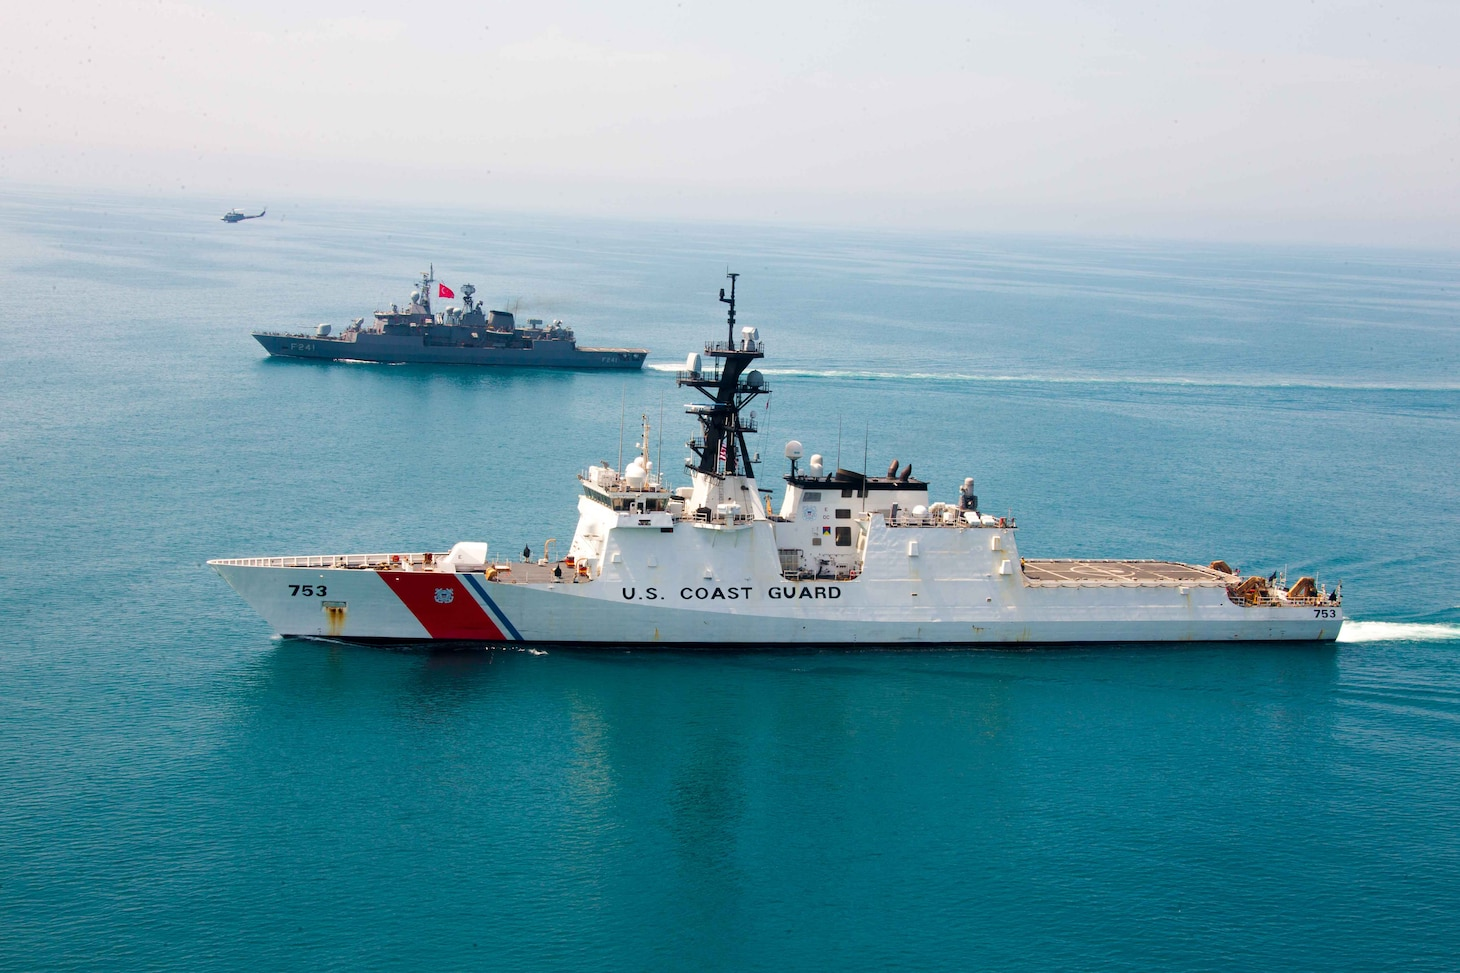 210430-G-G0108-1187 BLACK SEA April 30, 2021 U.S. Coast Guard members conduct boat and flight procedures on the USCGC Hamilton (WMSL 753) with Turkish naval members aboard the TCG Turgutries (F-241) in the Black Sea, April 30, 2021. Hamilton is on a routine deployment in the U.S. Sixth Fleet area of operations in support of U.S. national interests and security in Europe and Africa. (U.S. Coast Guard courtesy photo)